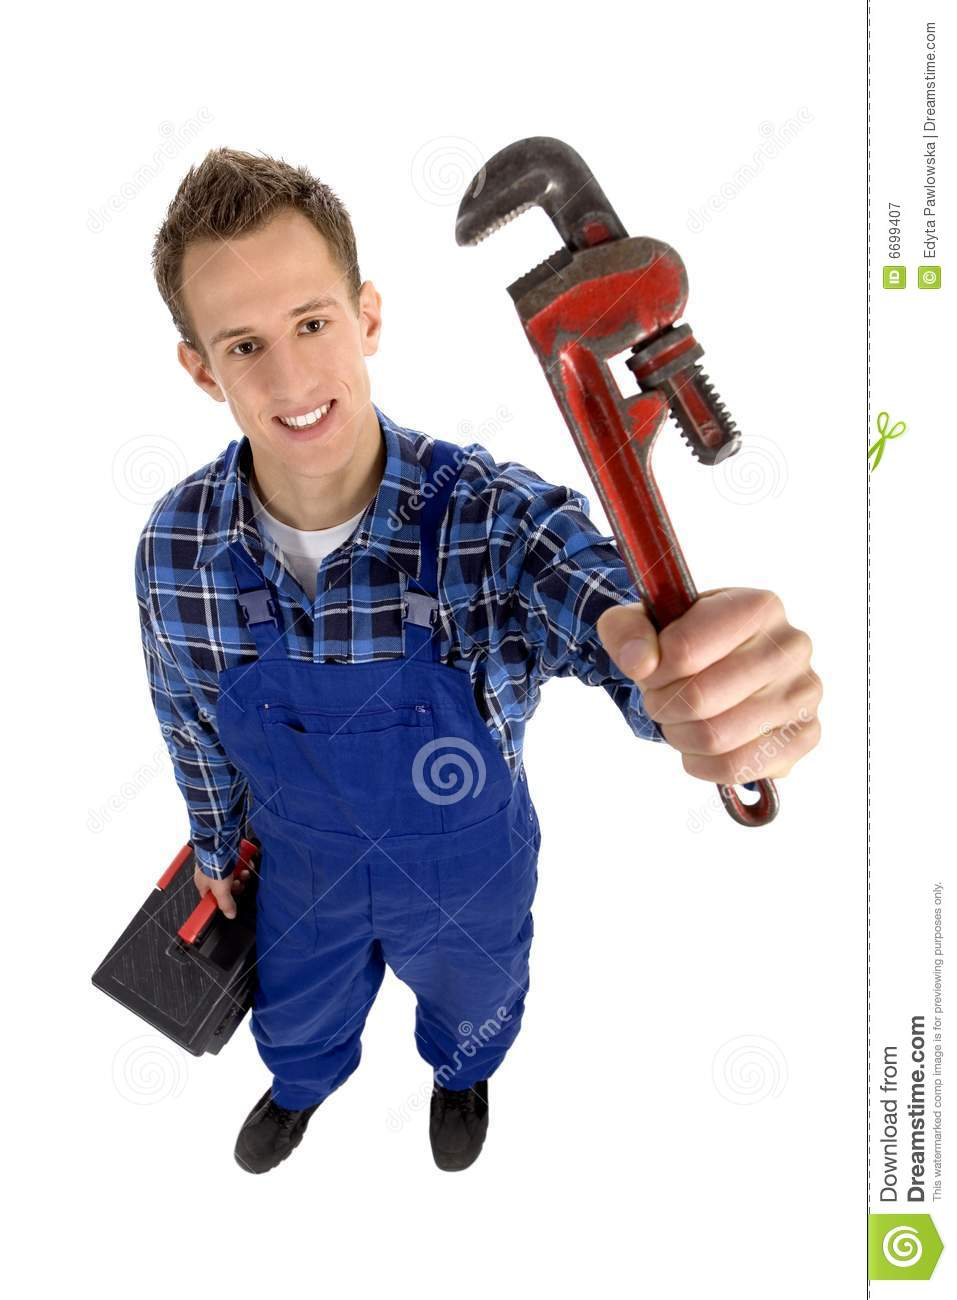 Plumber Royalty Free Stock Photography - Image: 6699407